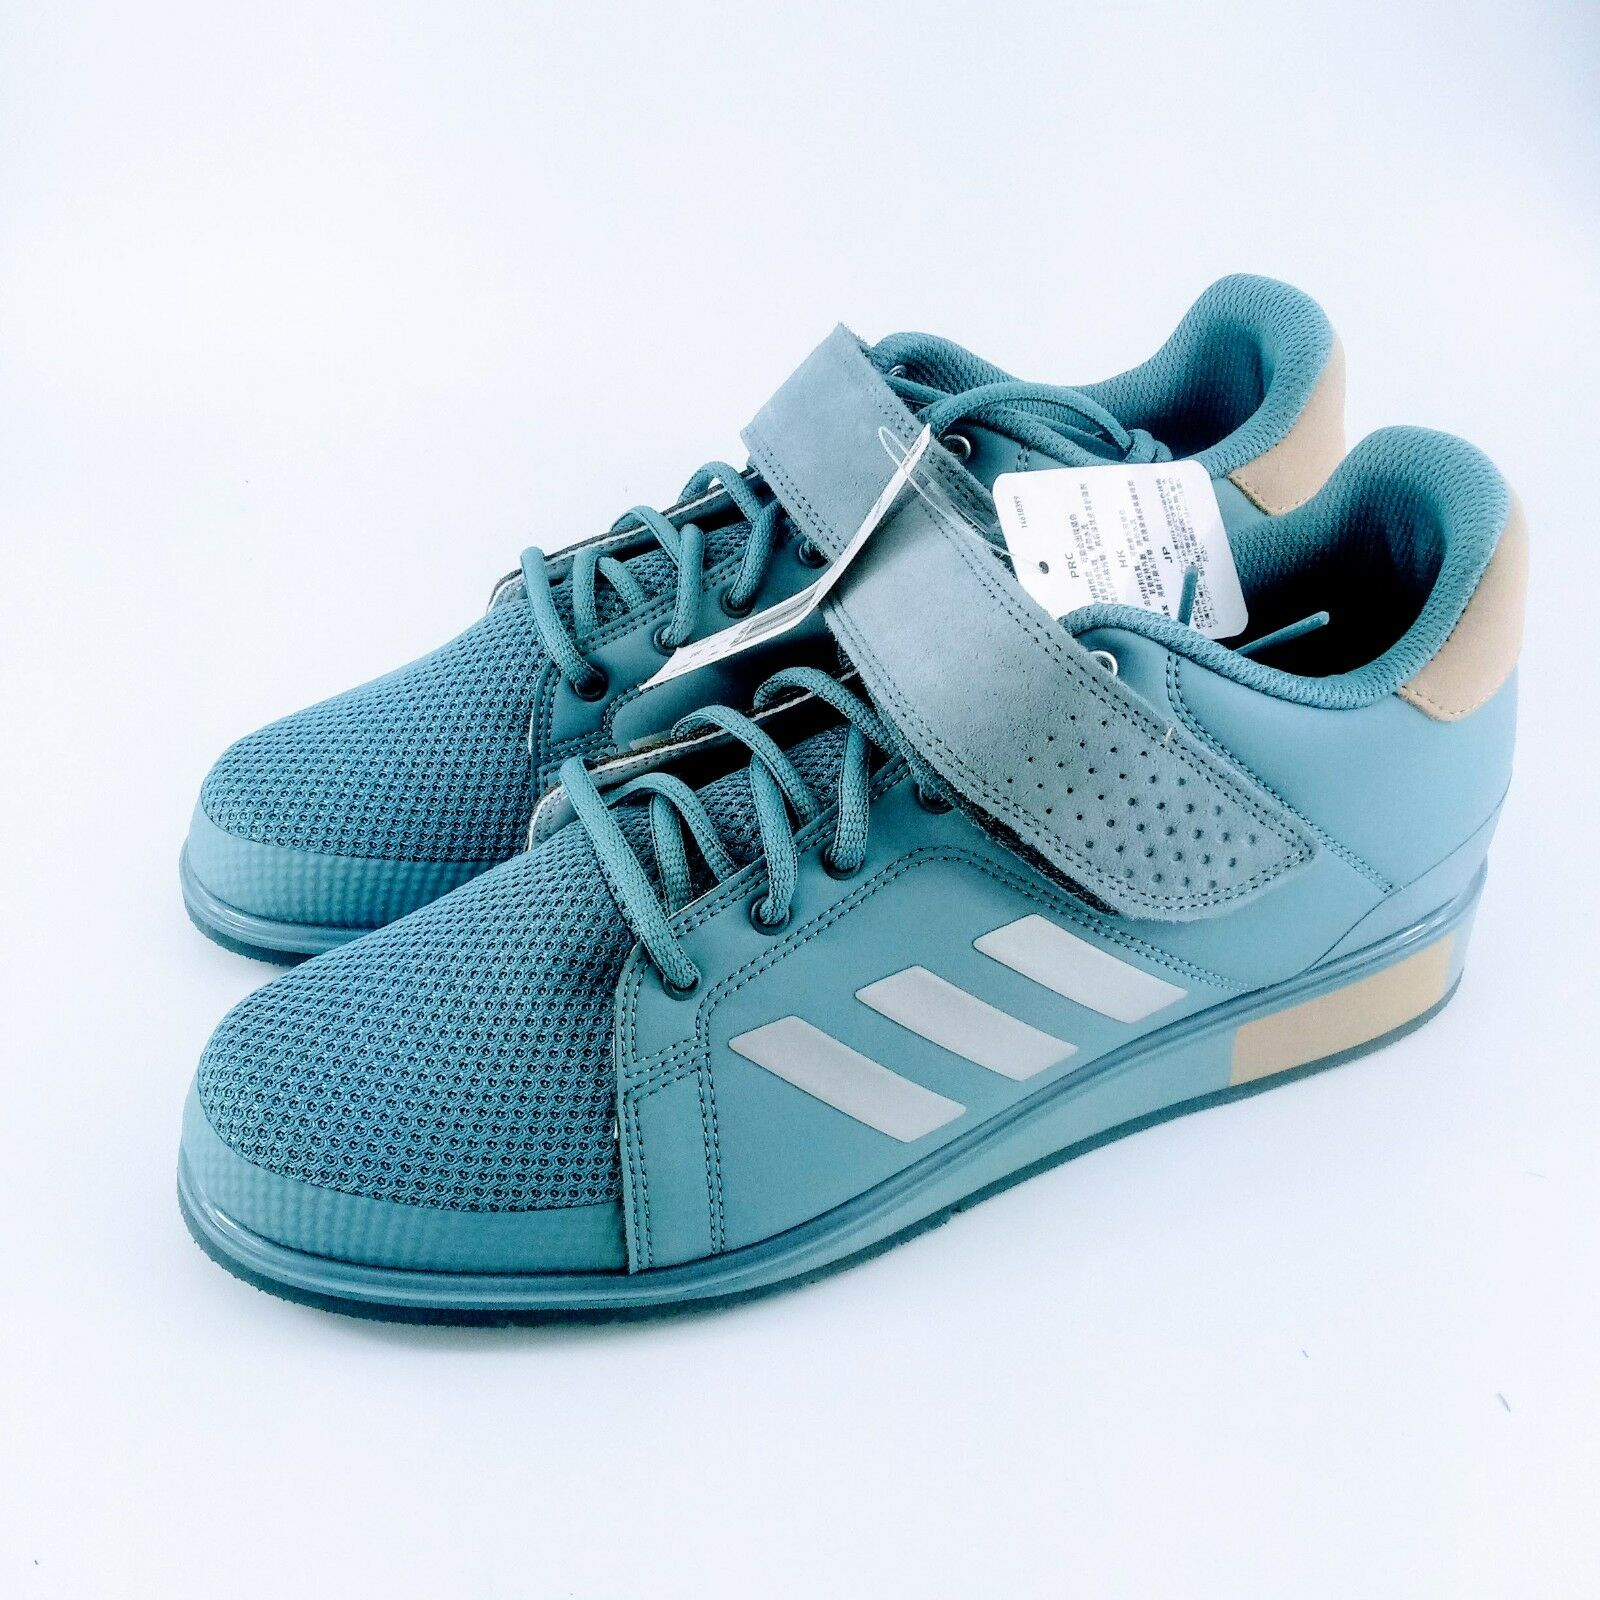 adidas Power - Perfect 3 Weighlifting Shoes - Power Blue/Raw Grey - DA9878 - Size: 11.5 558666